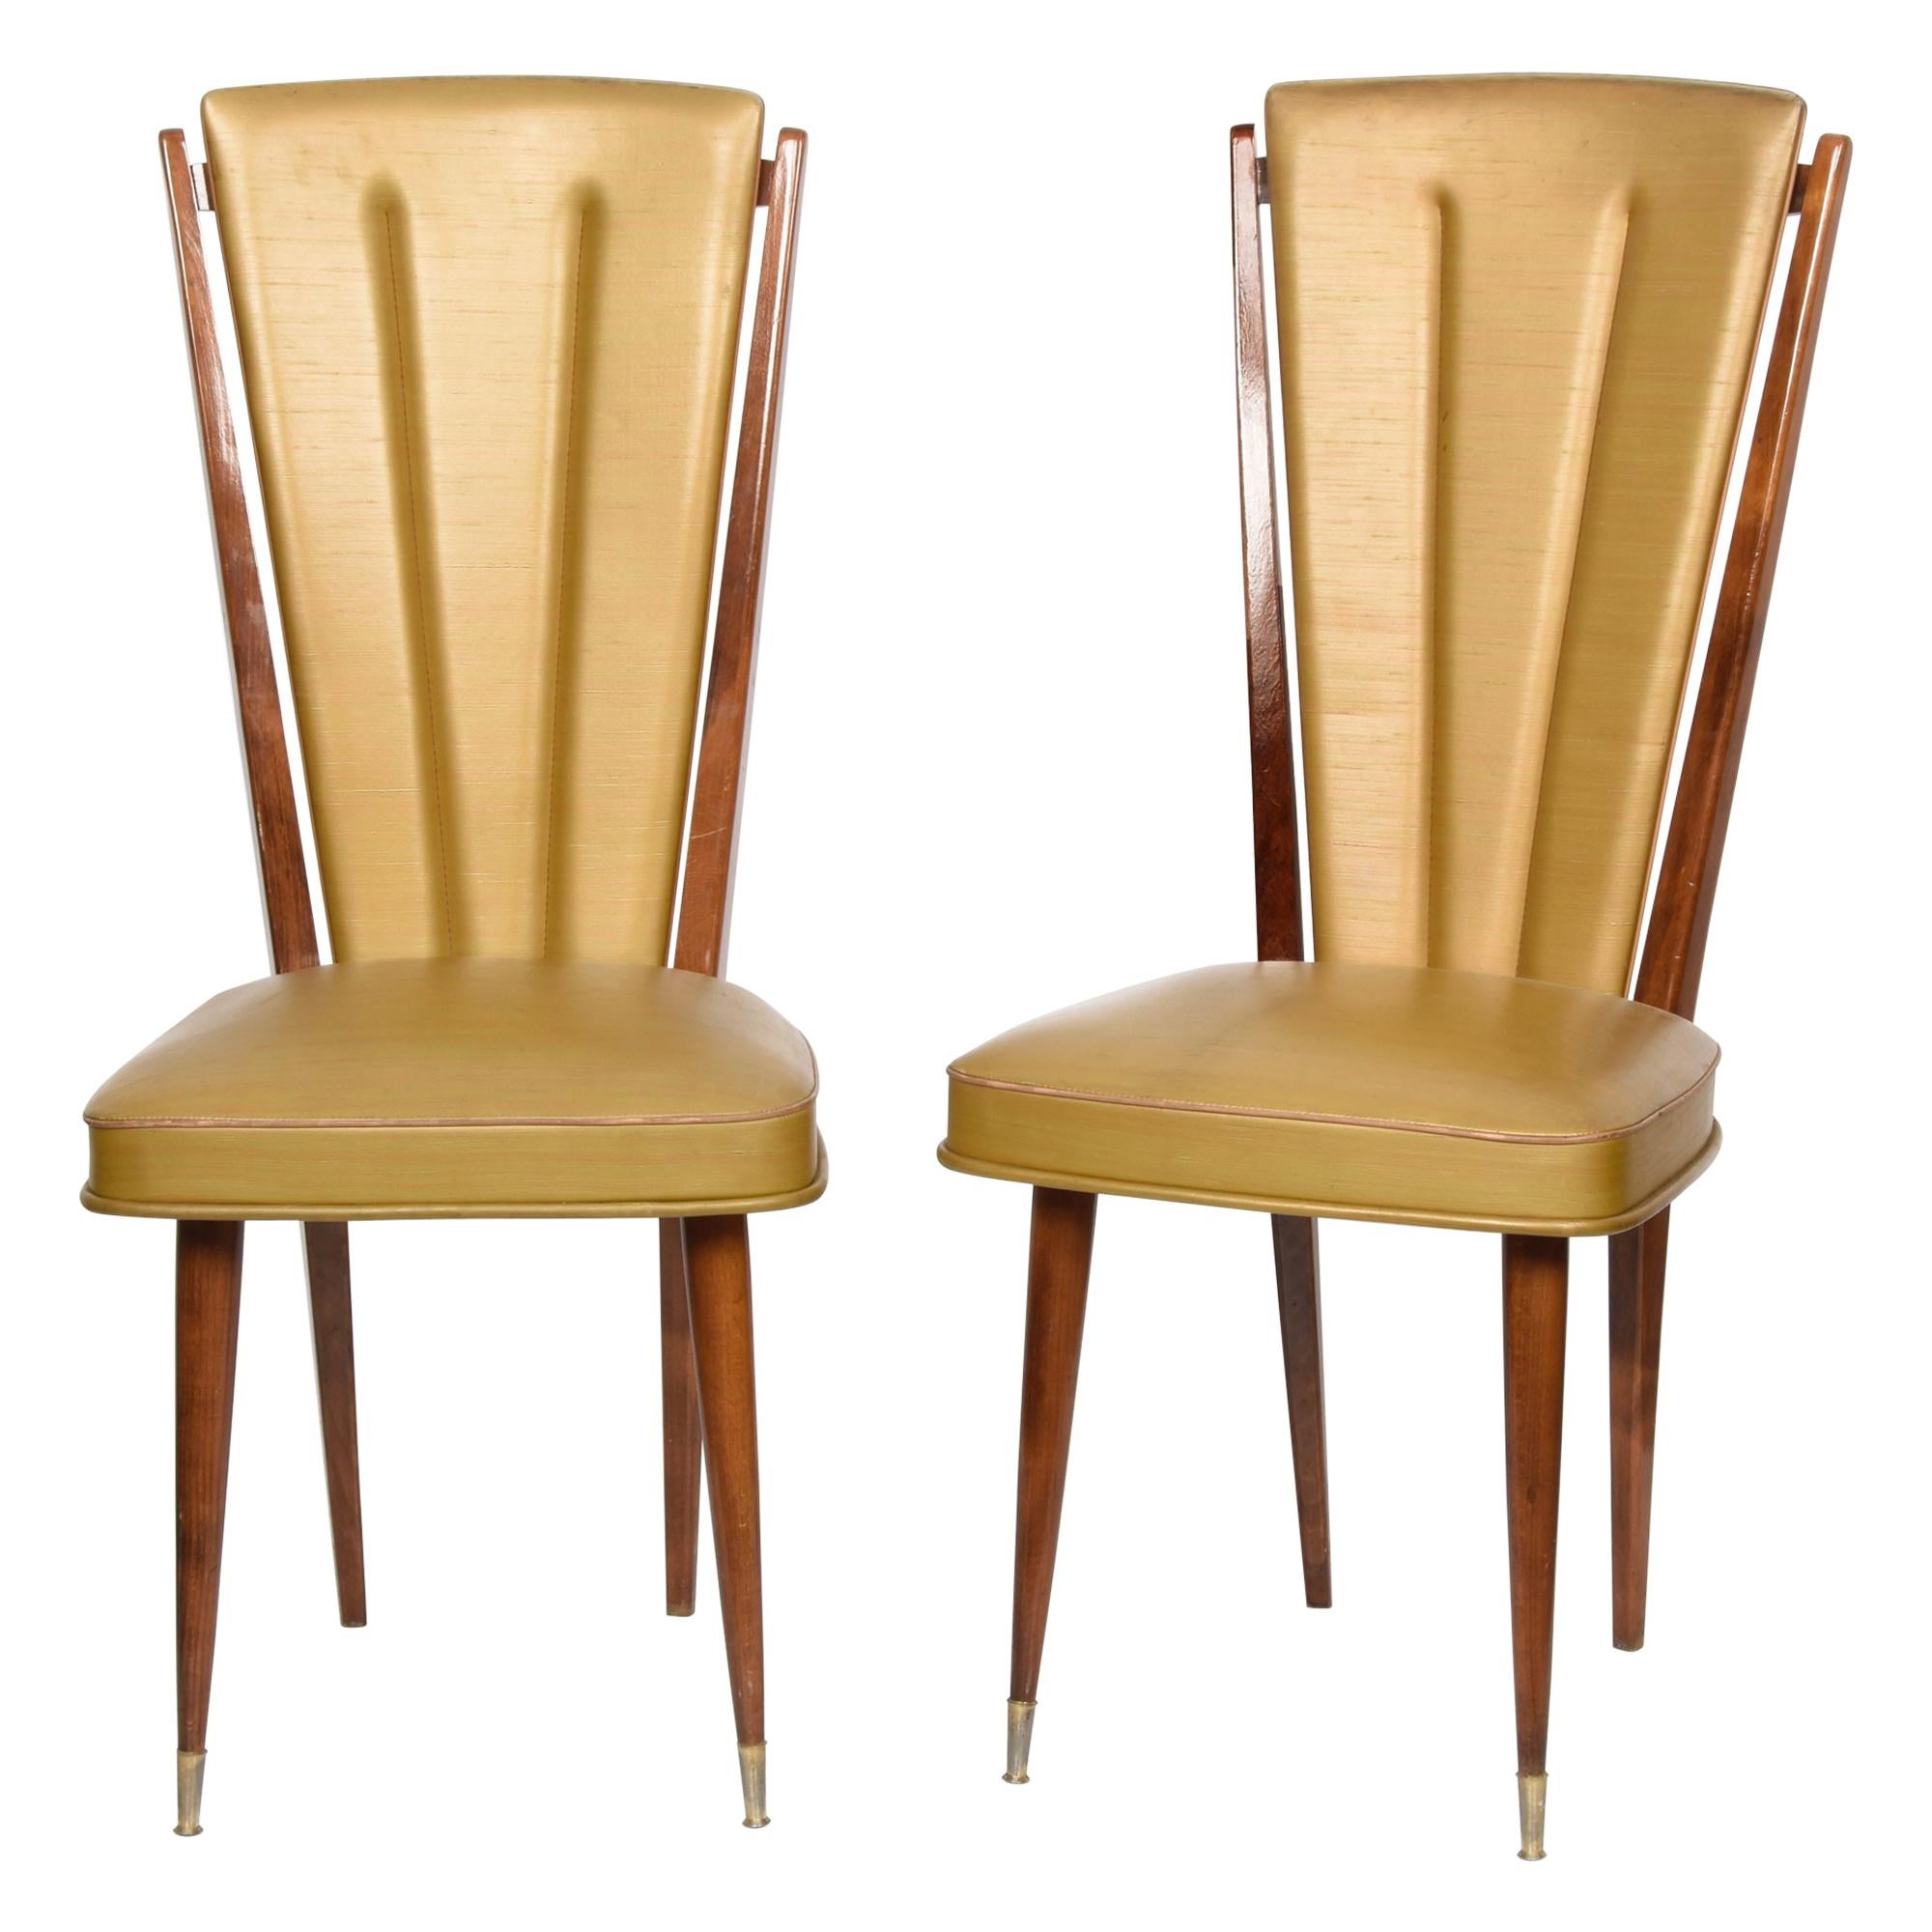 Pair of Ameublement NF Beech and Beige Vinyl Upholstered Dining Chairs, 1950s